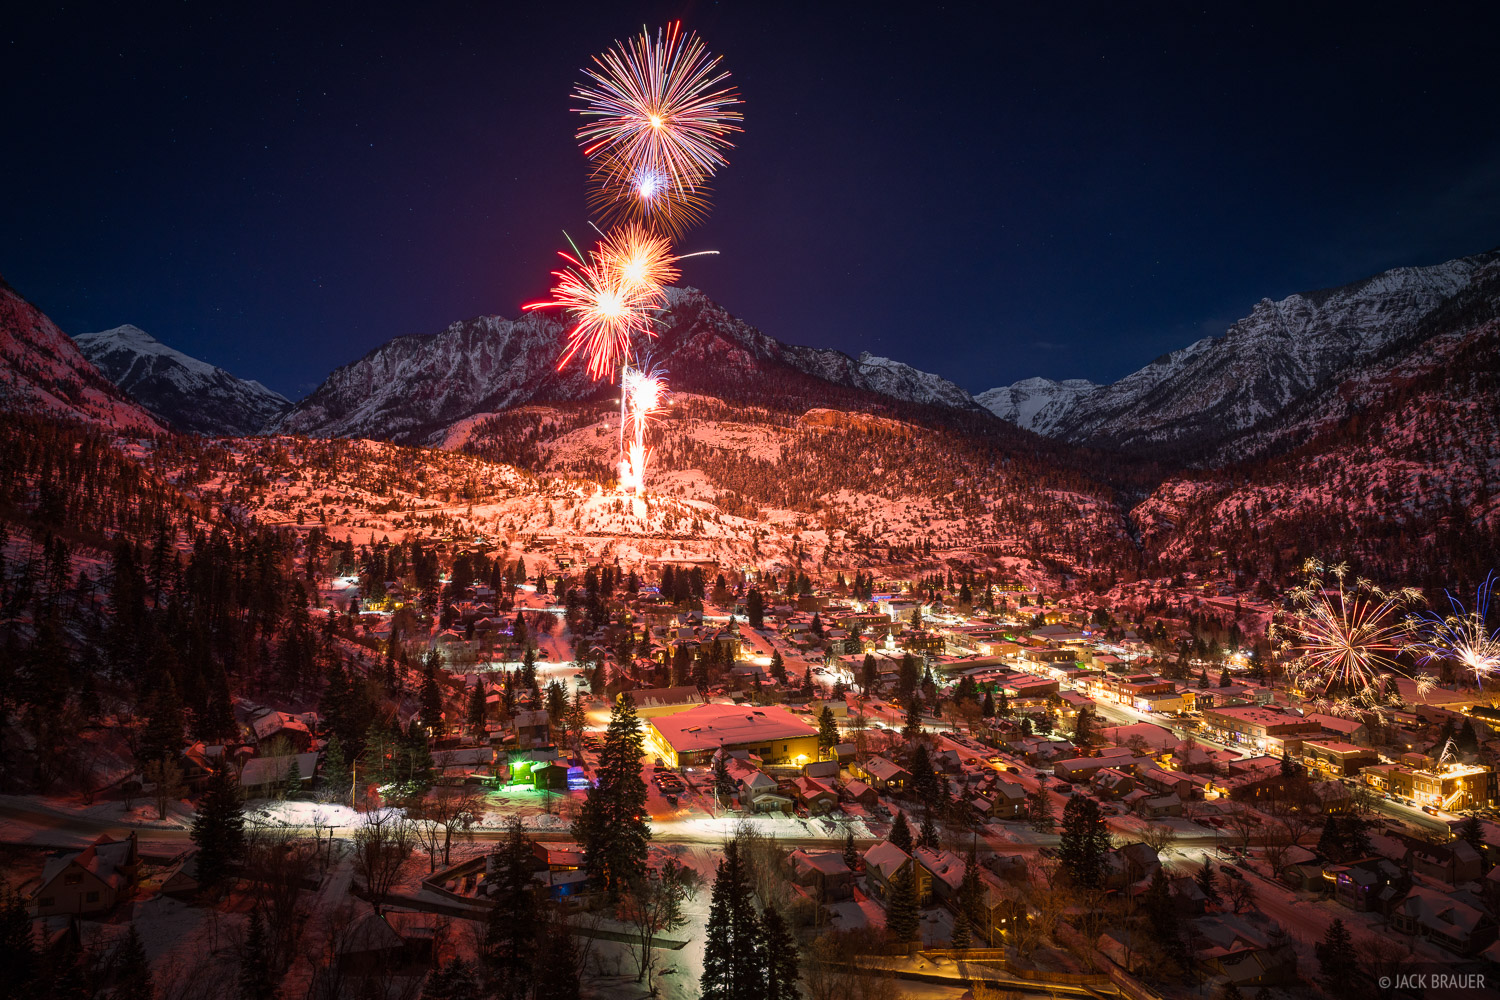 New Year's 2021 fireworks over the town of Ouray in the San Juan Mountains of Colorado. The booms echoed through the mountain...